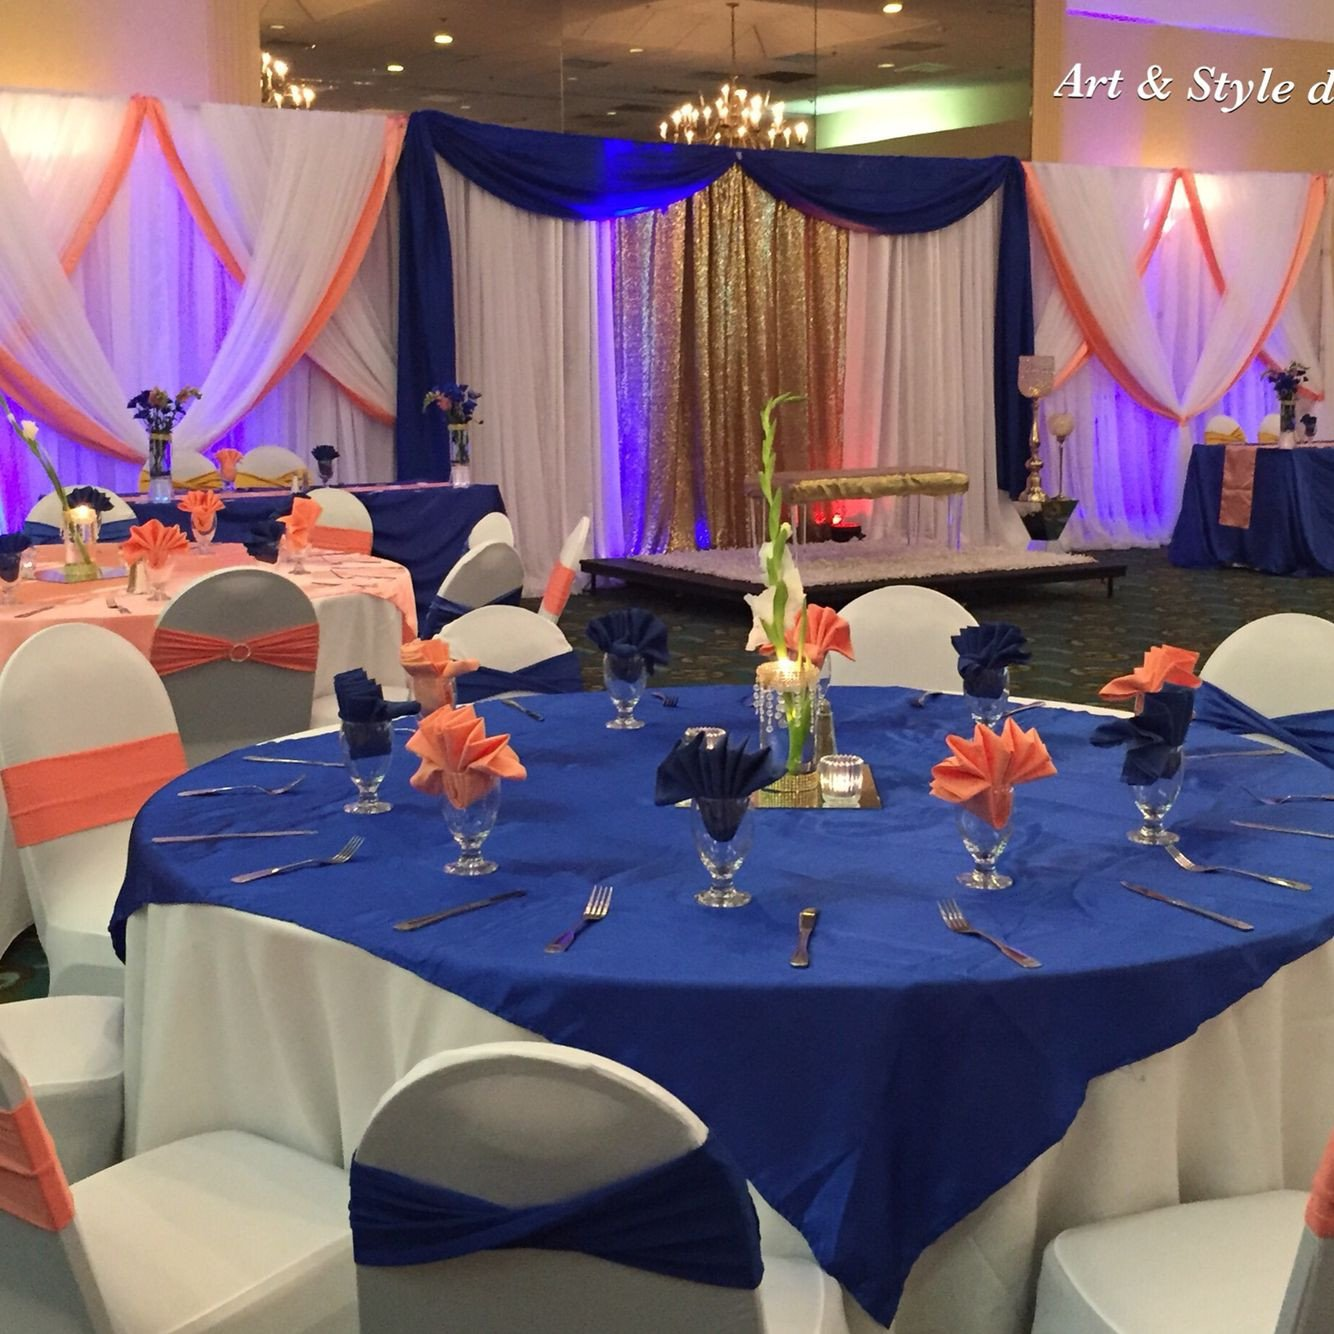 Royal Blue Wedding Decor Ideas Fresh Beautiful Wedding Decor Royal Blue and Coral Artandstyledecor